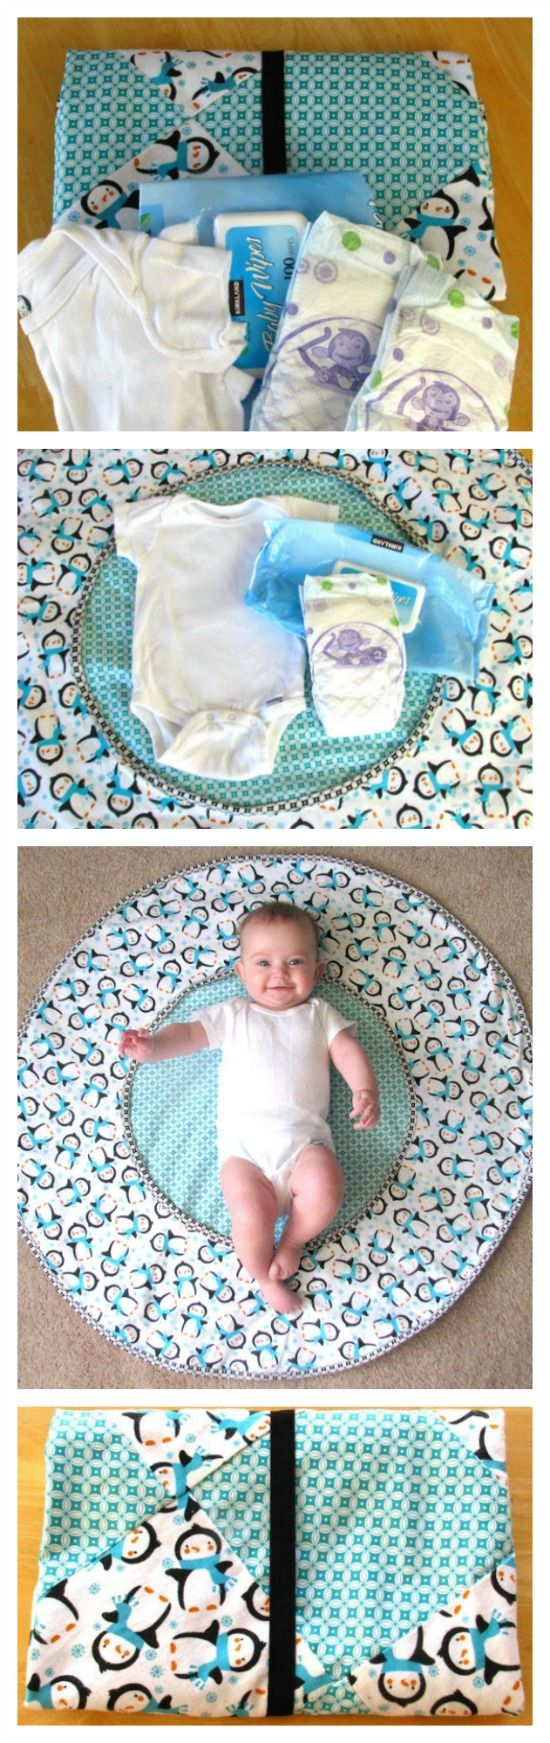 Baby Play Area Best 25 Infant Play Mat Ideas On Pinterest Infant Toddler